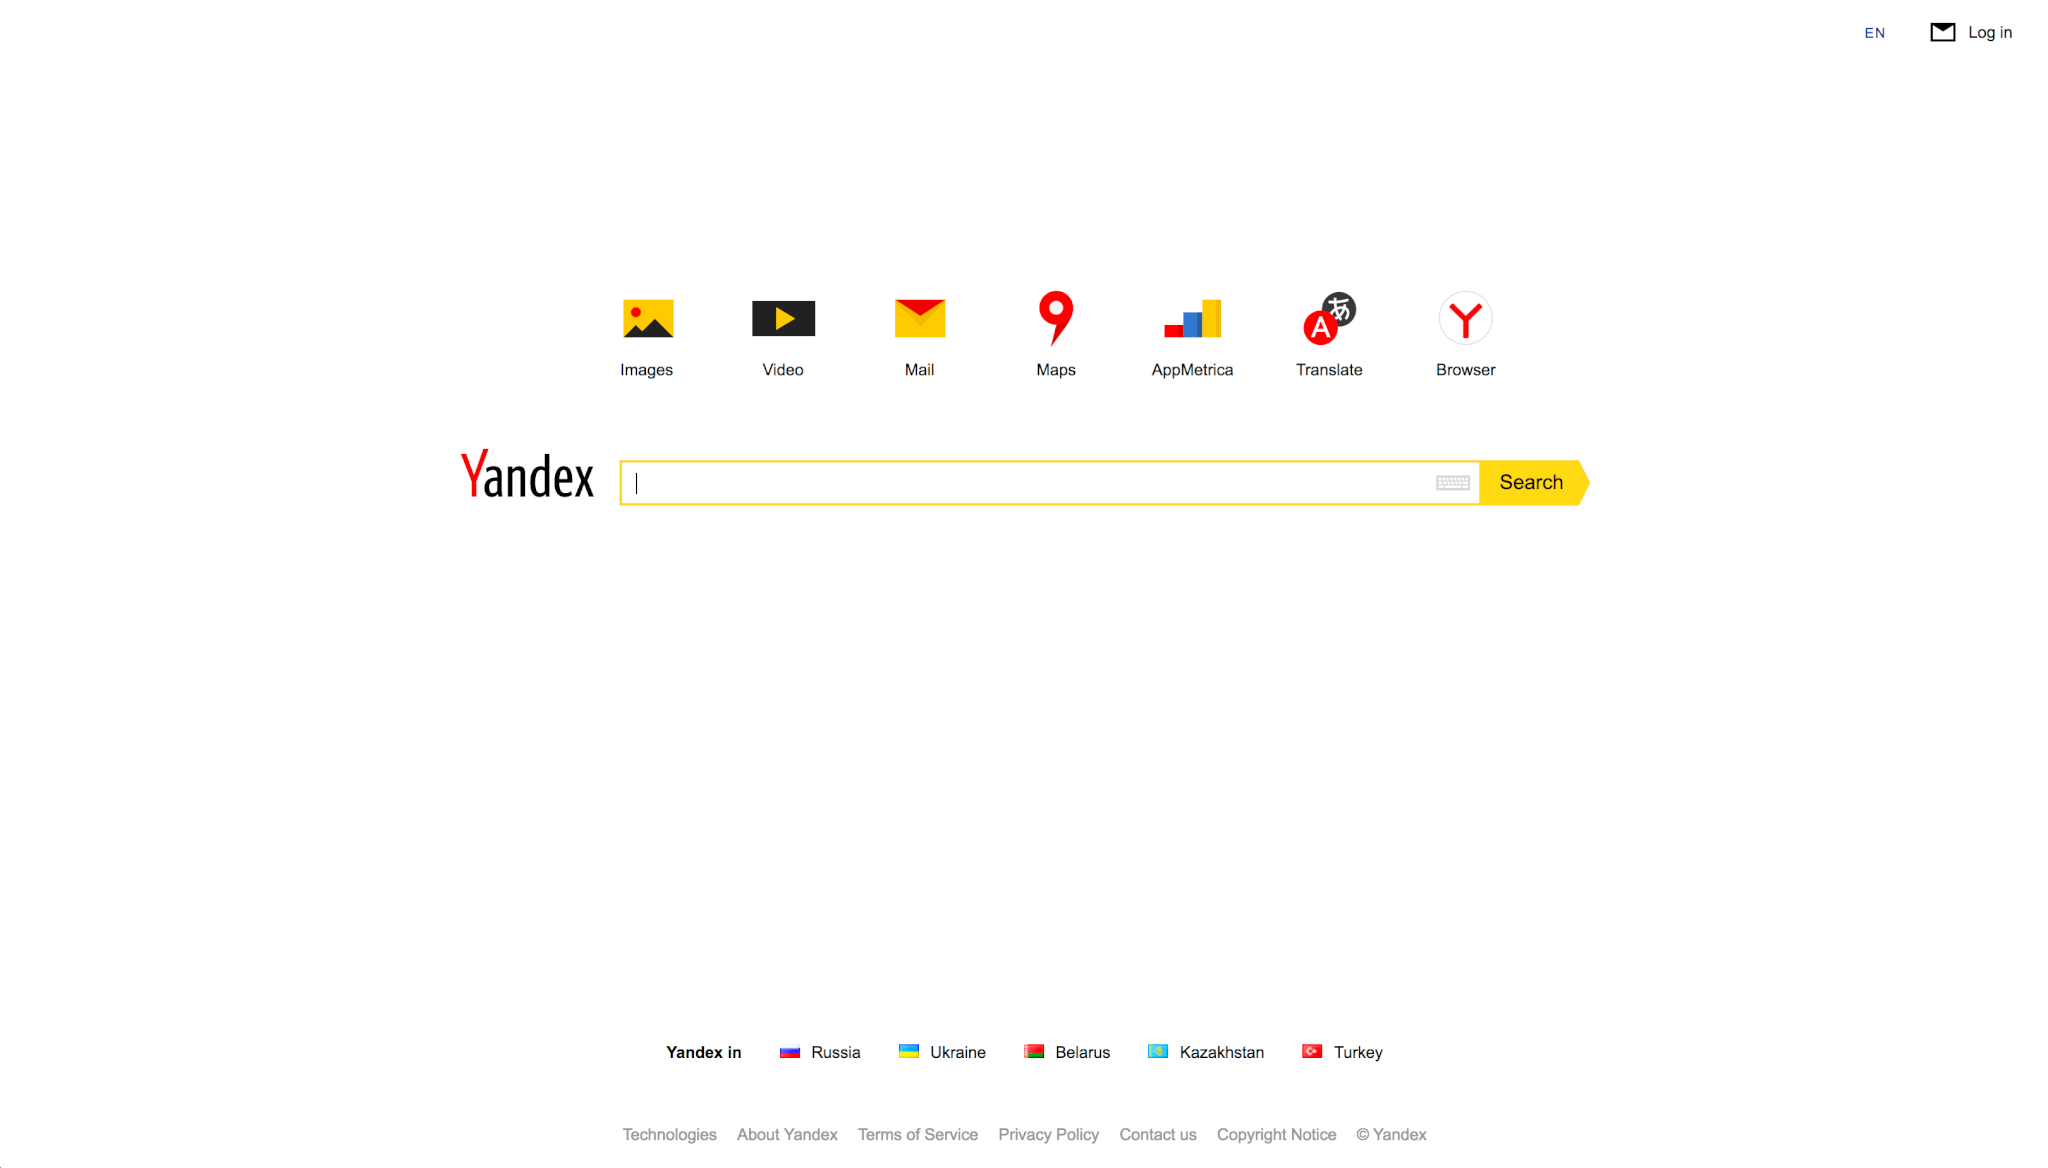 Search for people in Yandex. How to find a person in Yandex by photo, by last name, by email 10